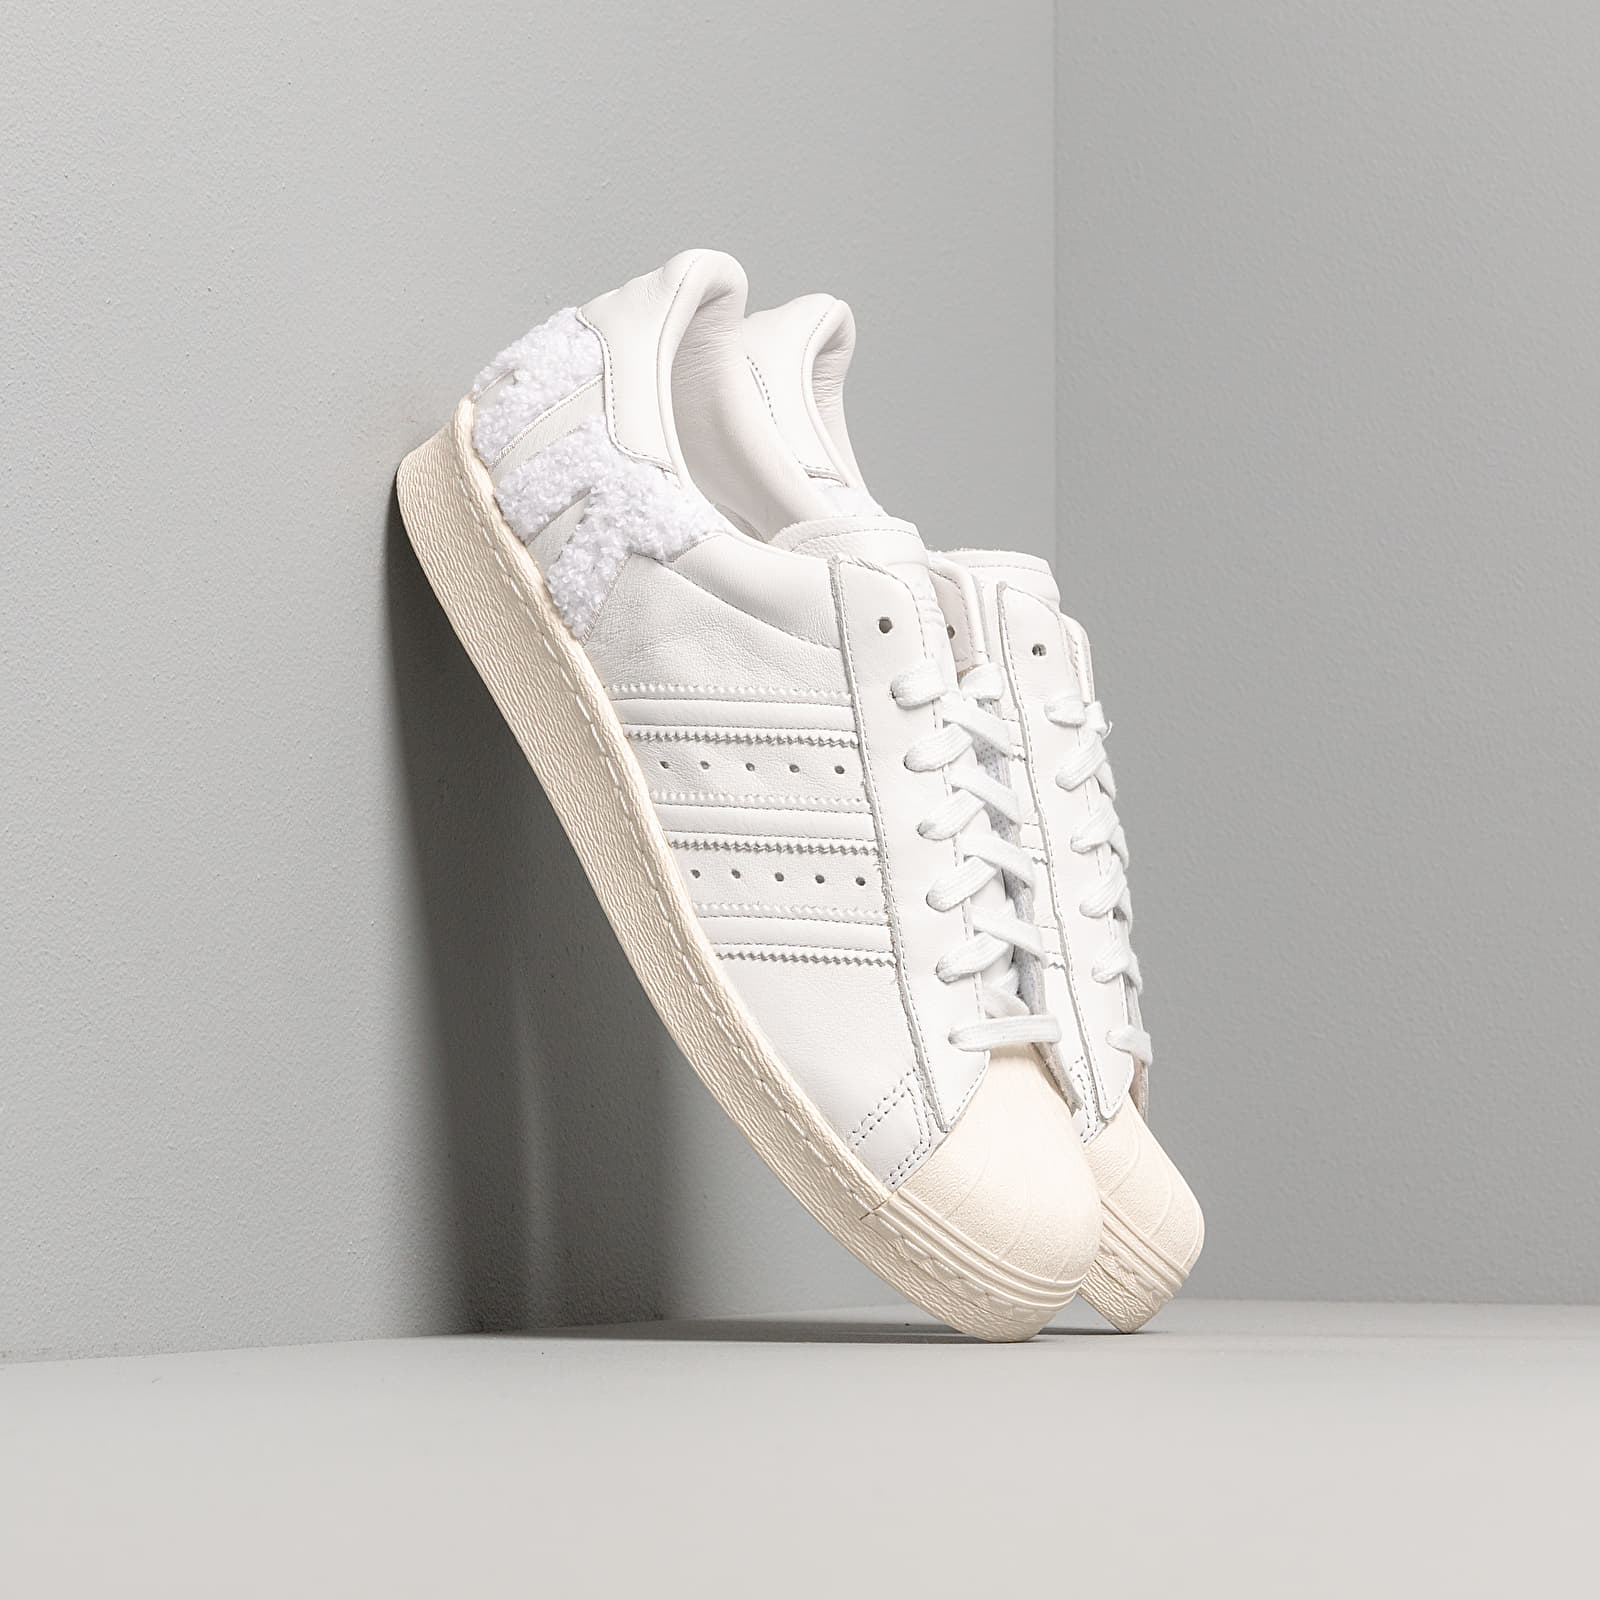 Moški čevlji adidas Superstar 80s Crystal White/ Crystal White/ Off White